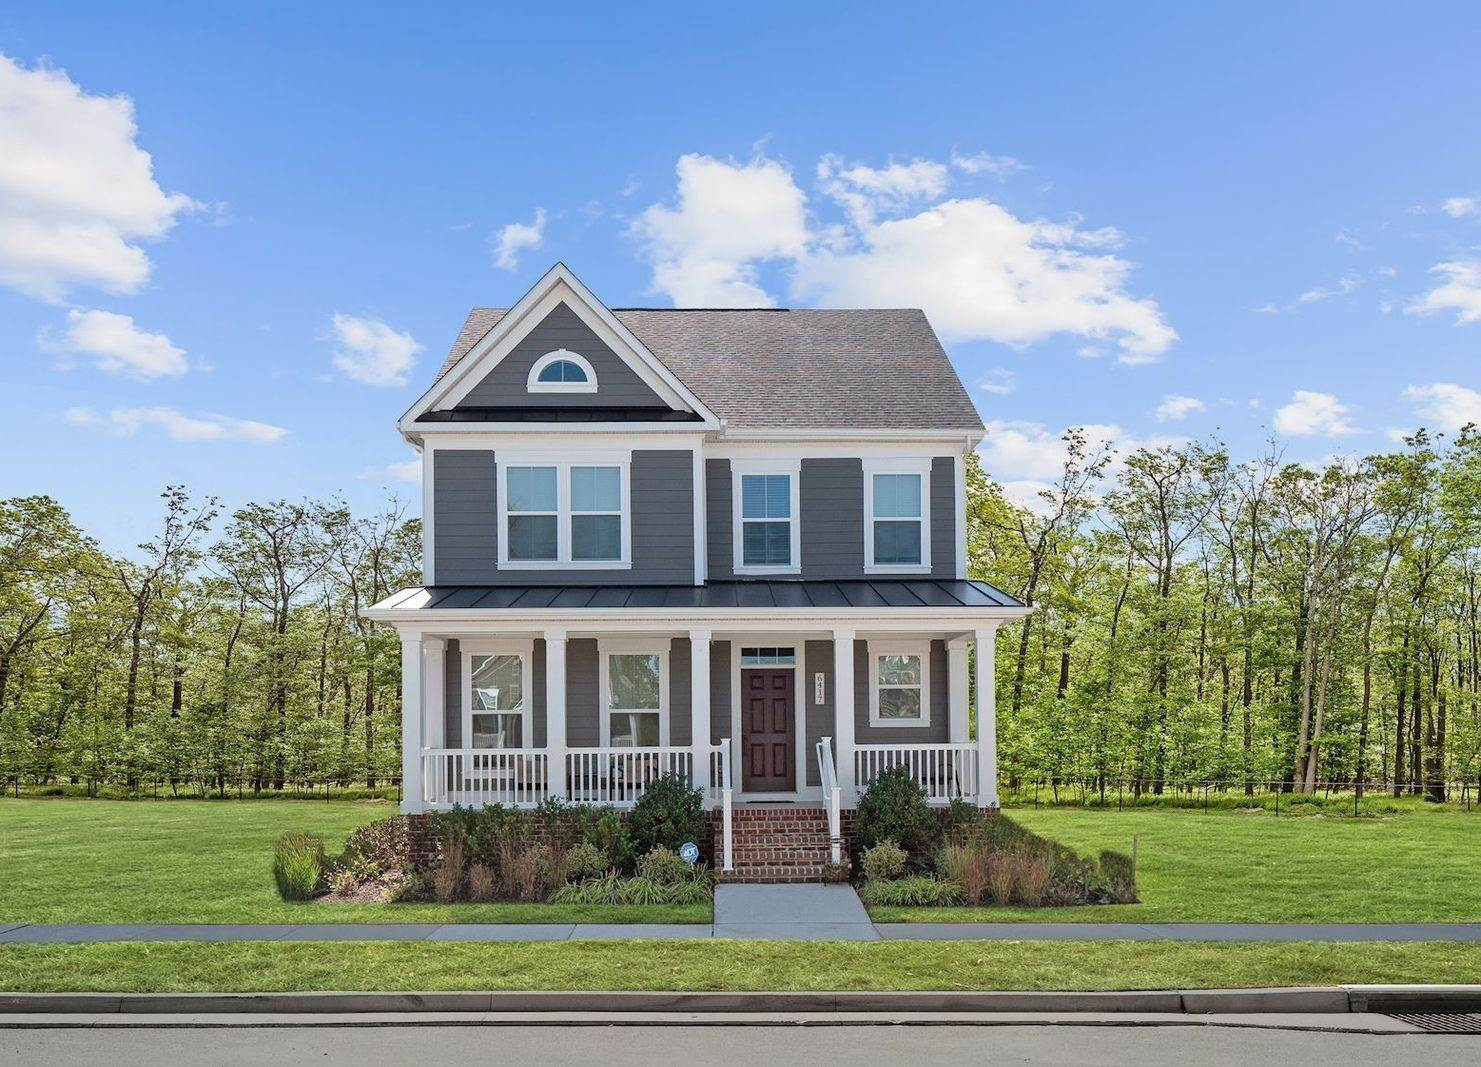 Single Family for Sale at Greenleigh Single Family Homes - Salinger 509 Heritage Street Baltimore, Maryland 21220 United States